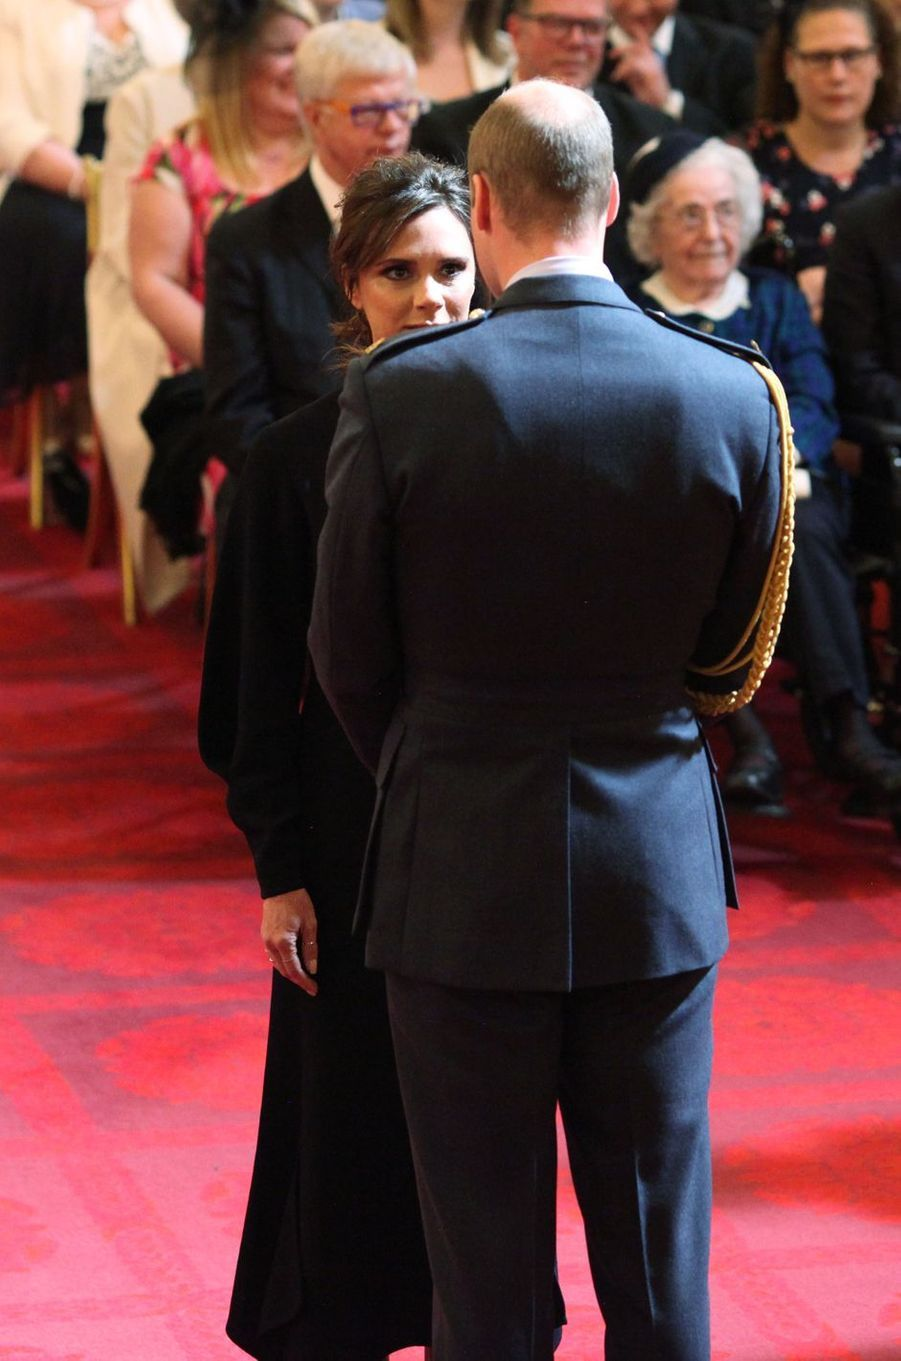 Le prince William et Victoria Beckham à Londres, le 19 avril 2017